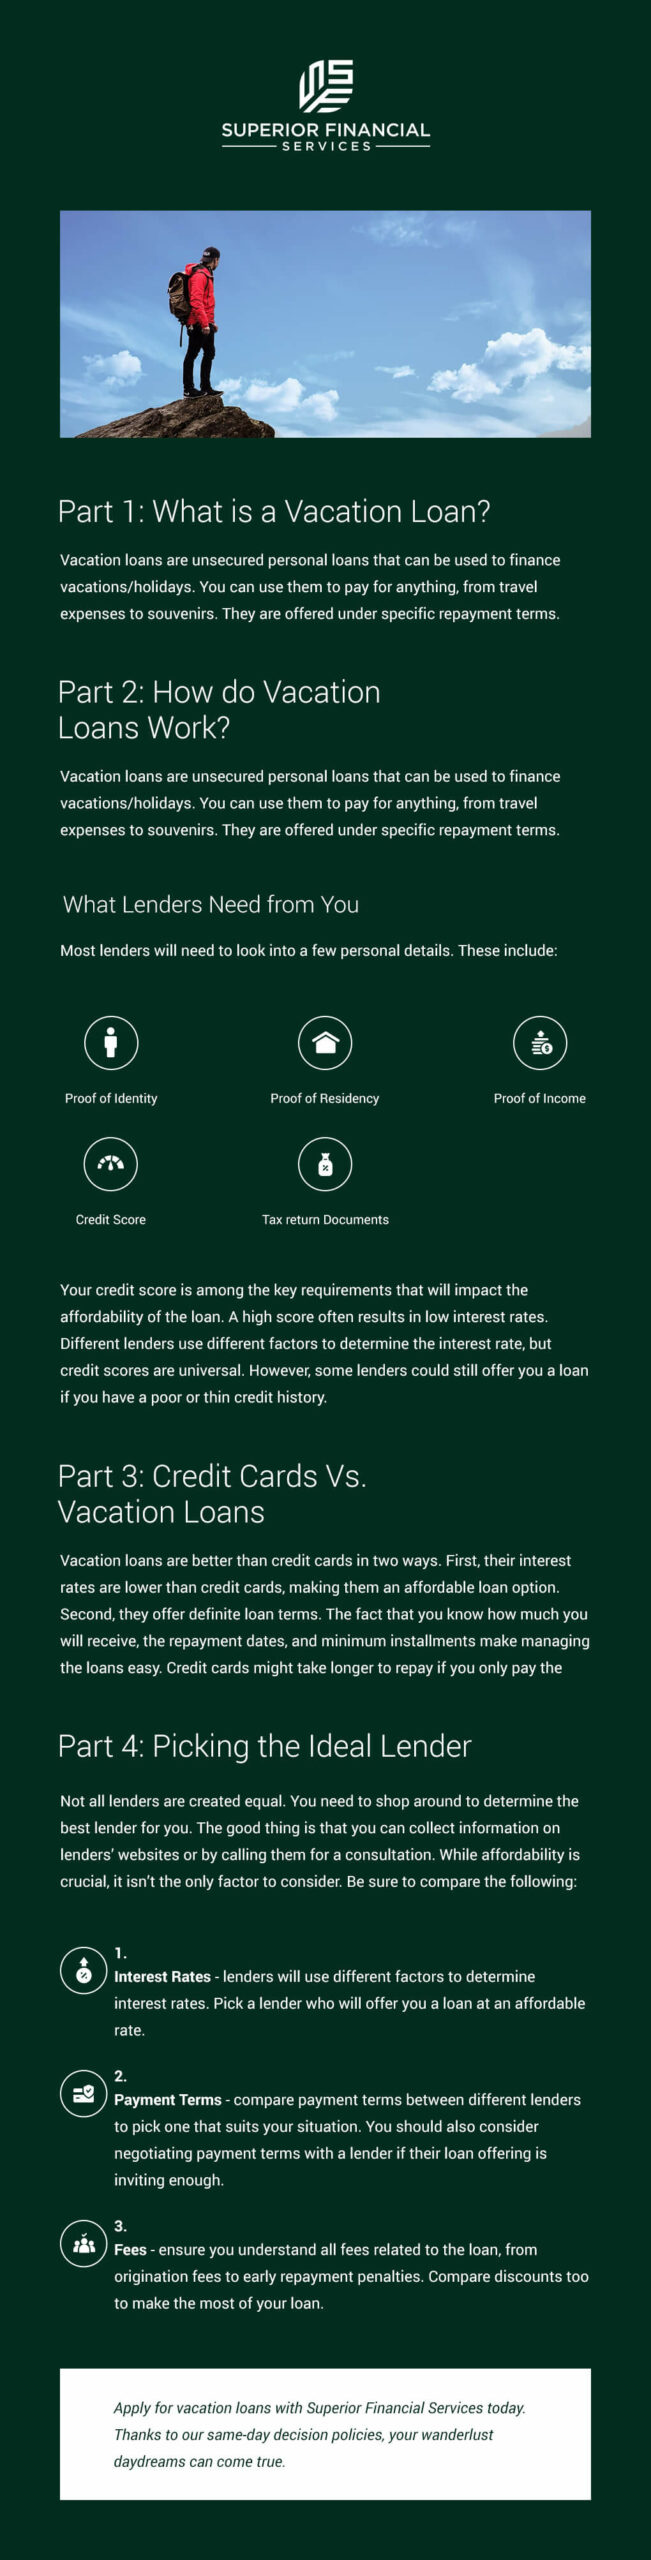 Vacation Loans Infographic